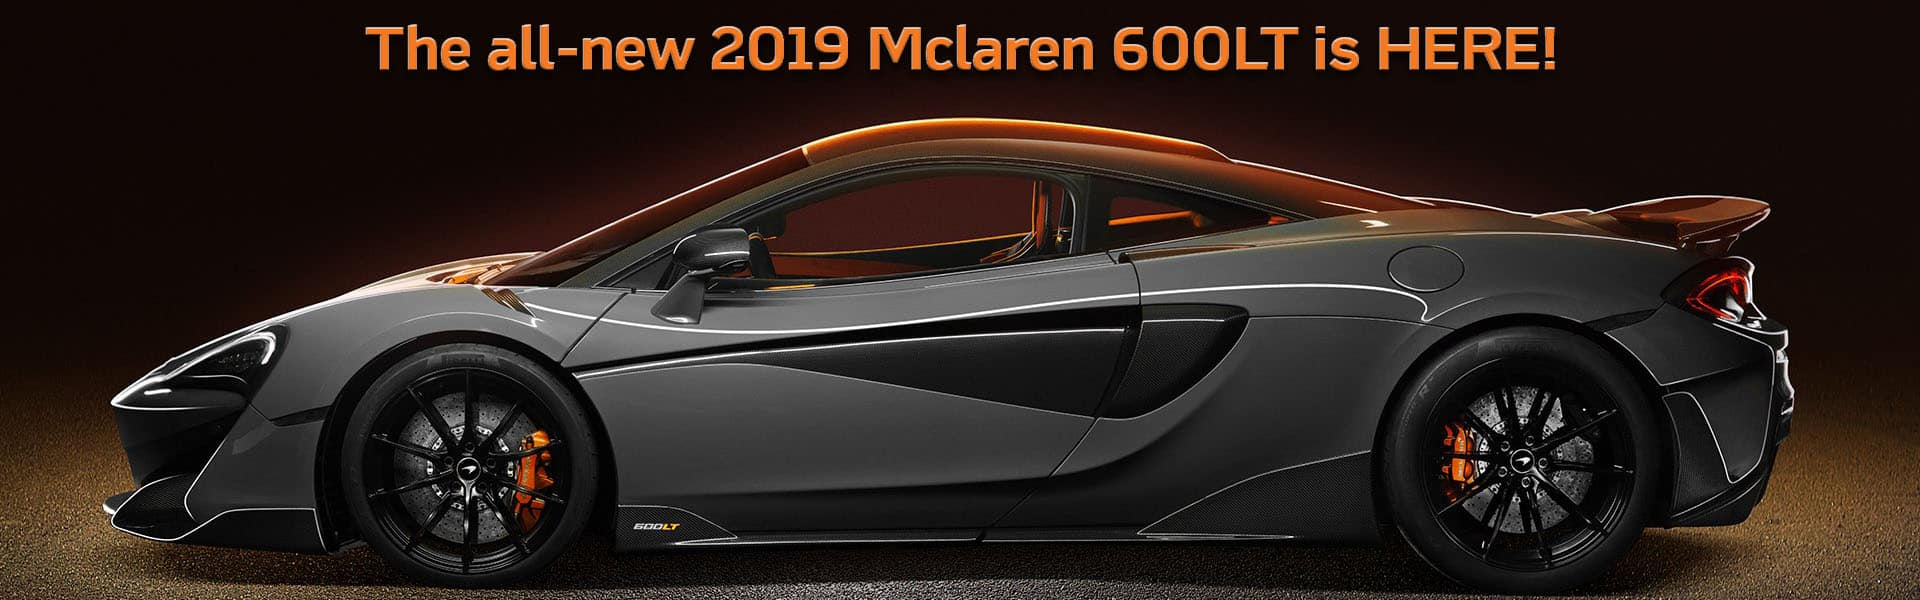 2019 McLaren 600LT is HERE!